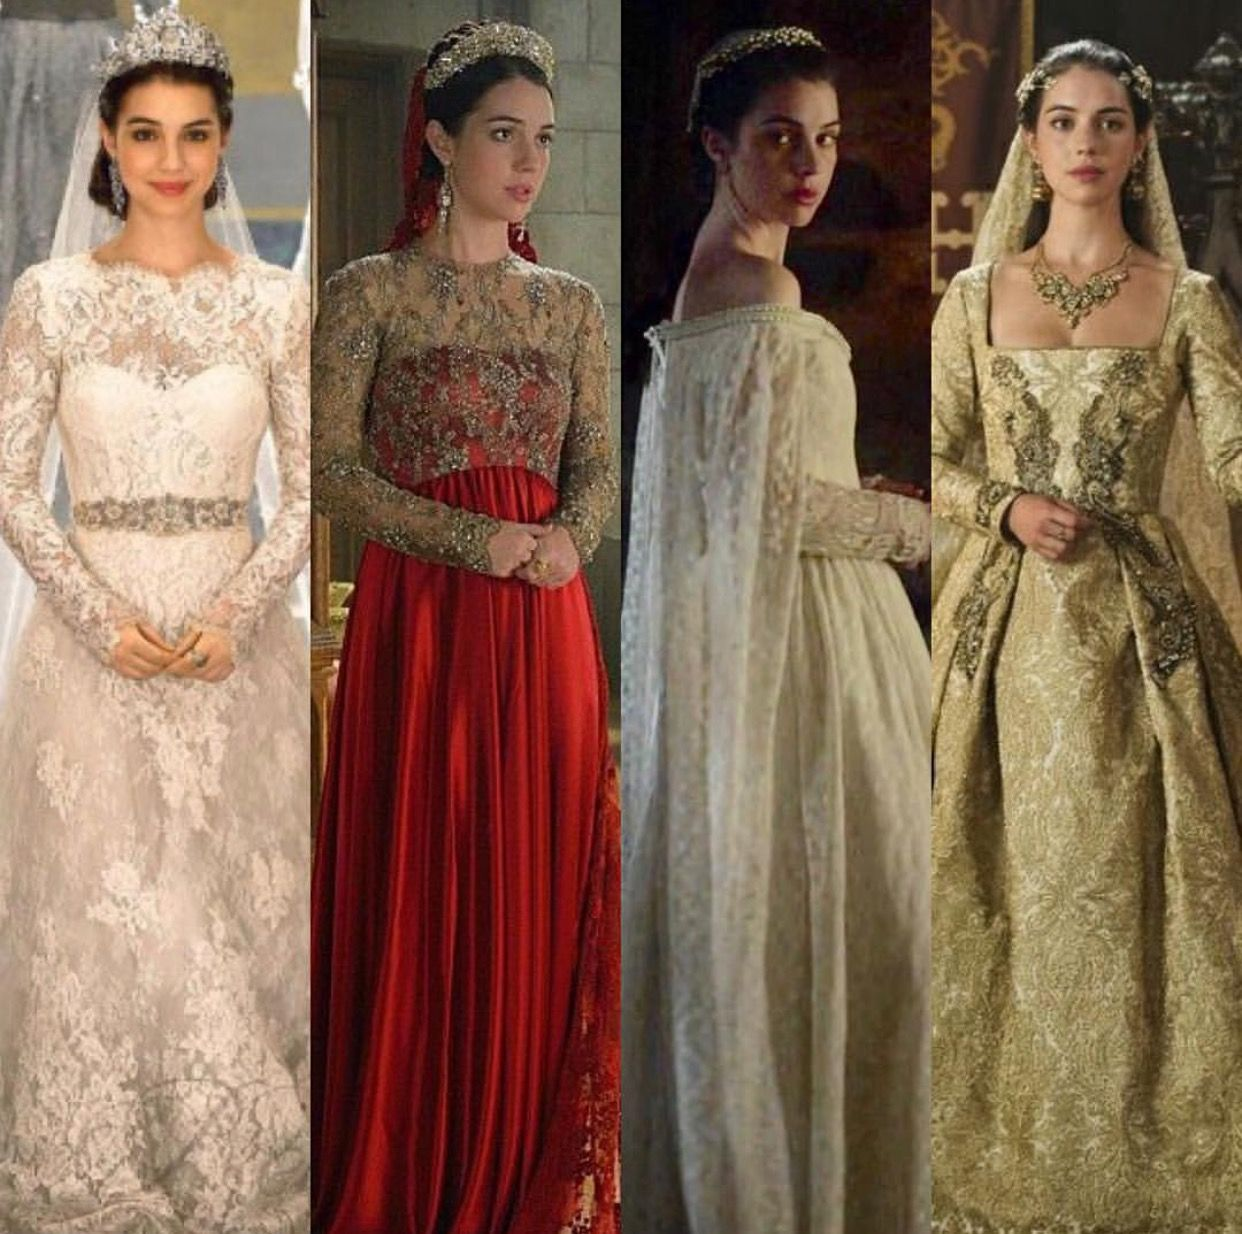 Mary queen of scots wedding dresses reign pinterest for Reign mary wedding dress